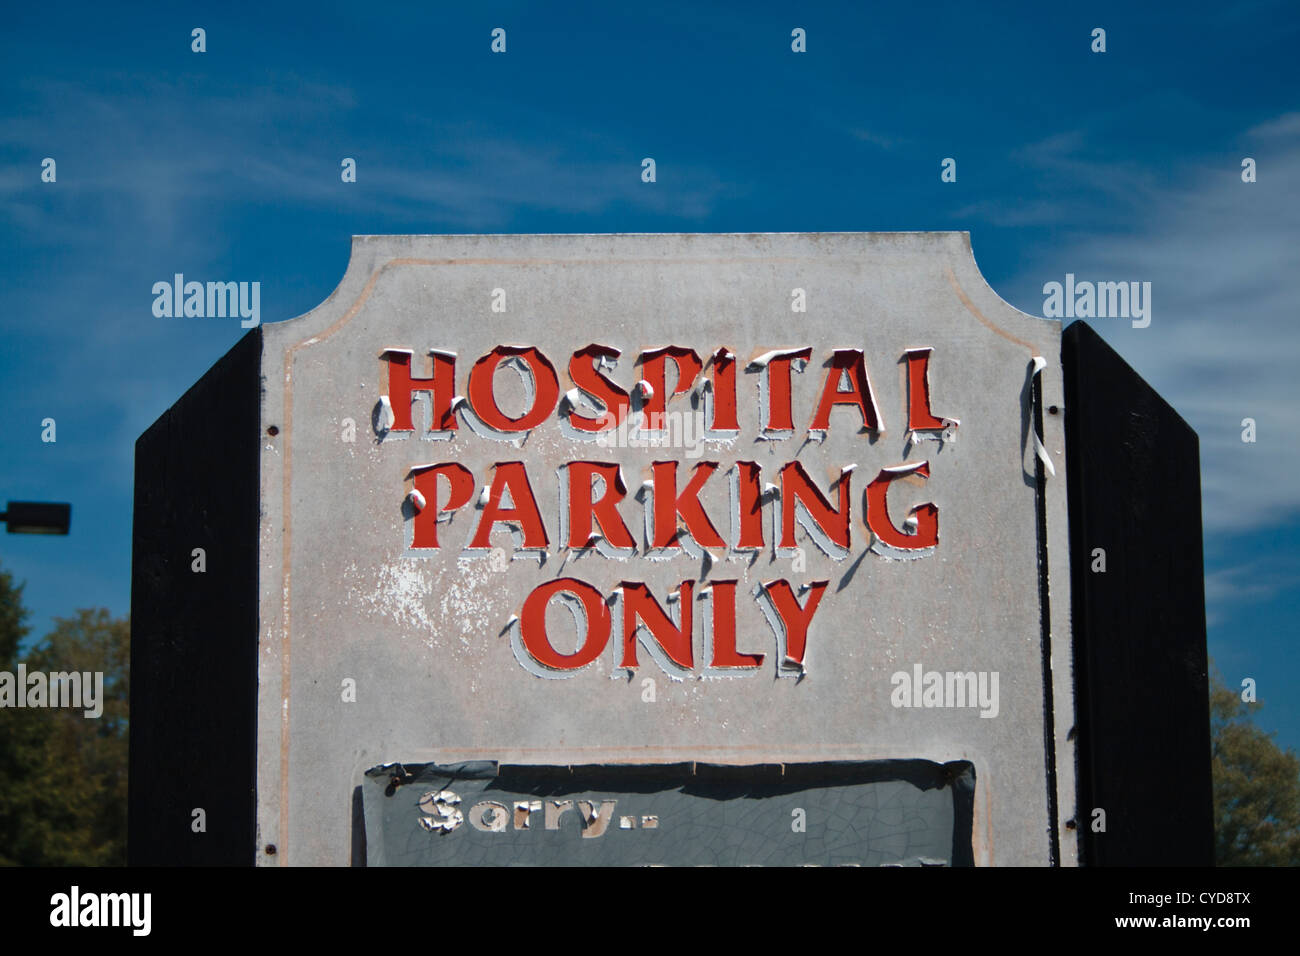 decrepit hospital parking only sign with peeling letters. - Stock Image